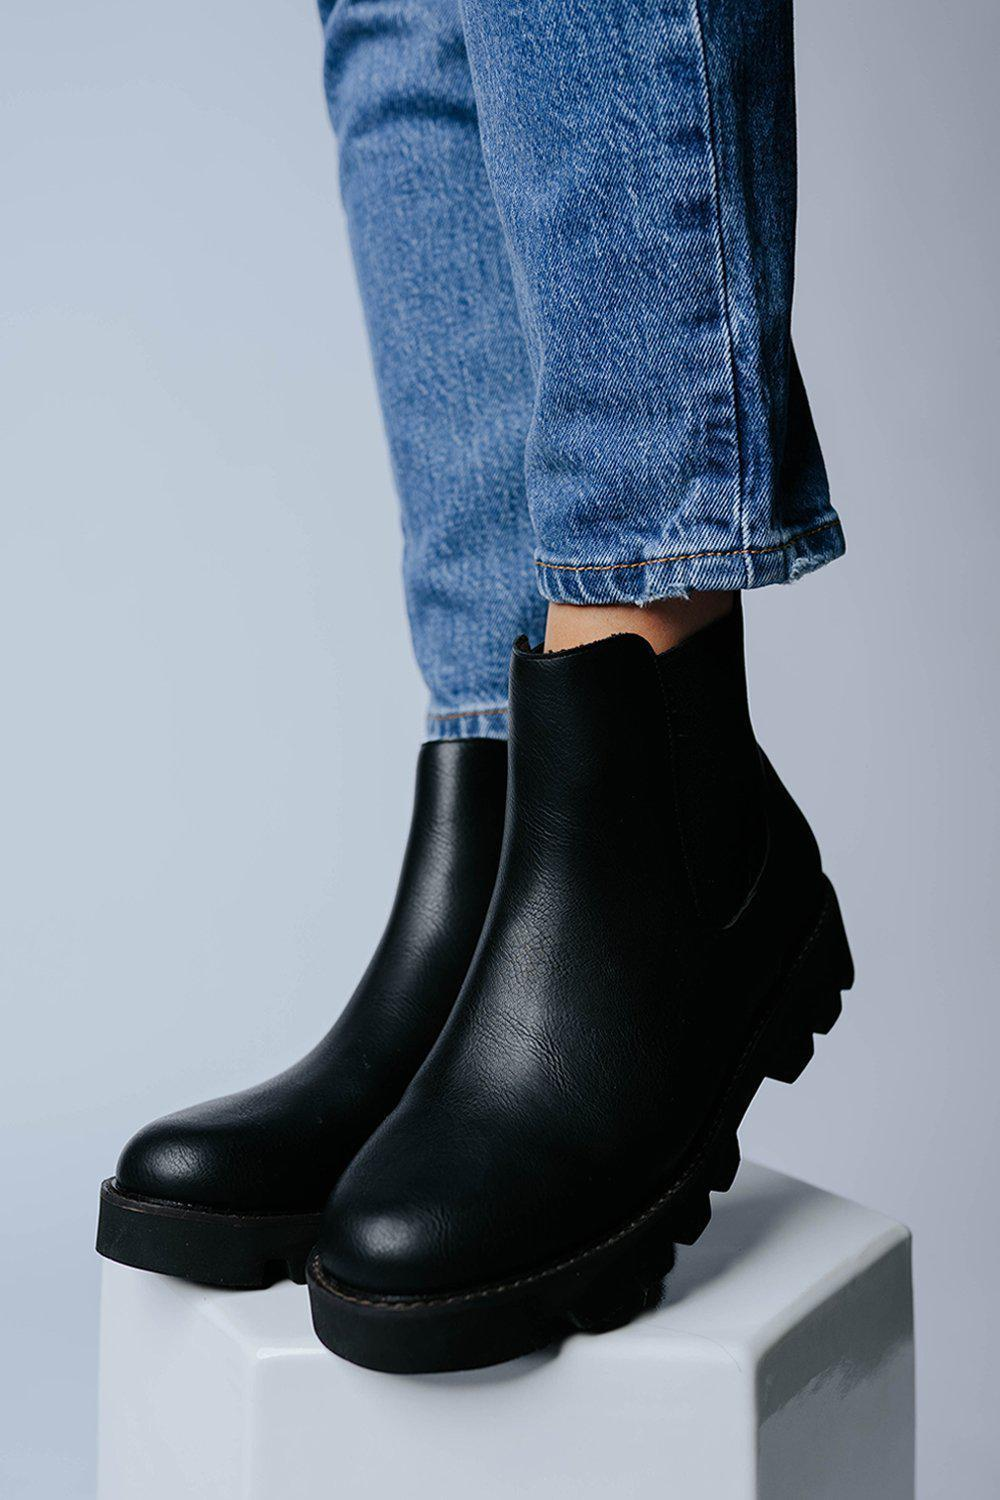 Watch Your Step Chelsea Boot in Black, cladandcloth, n/a.